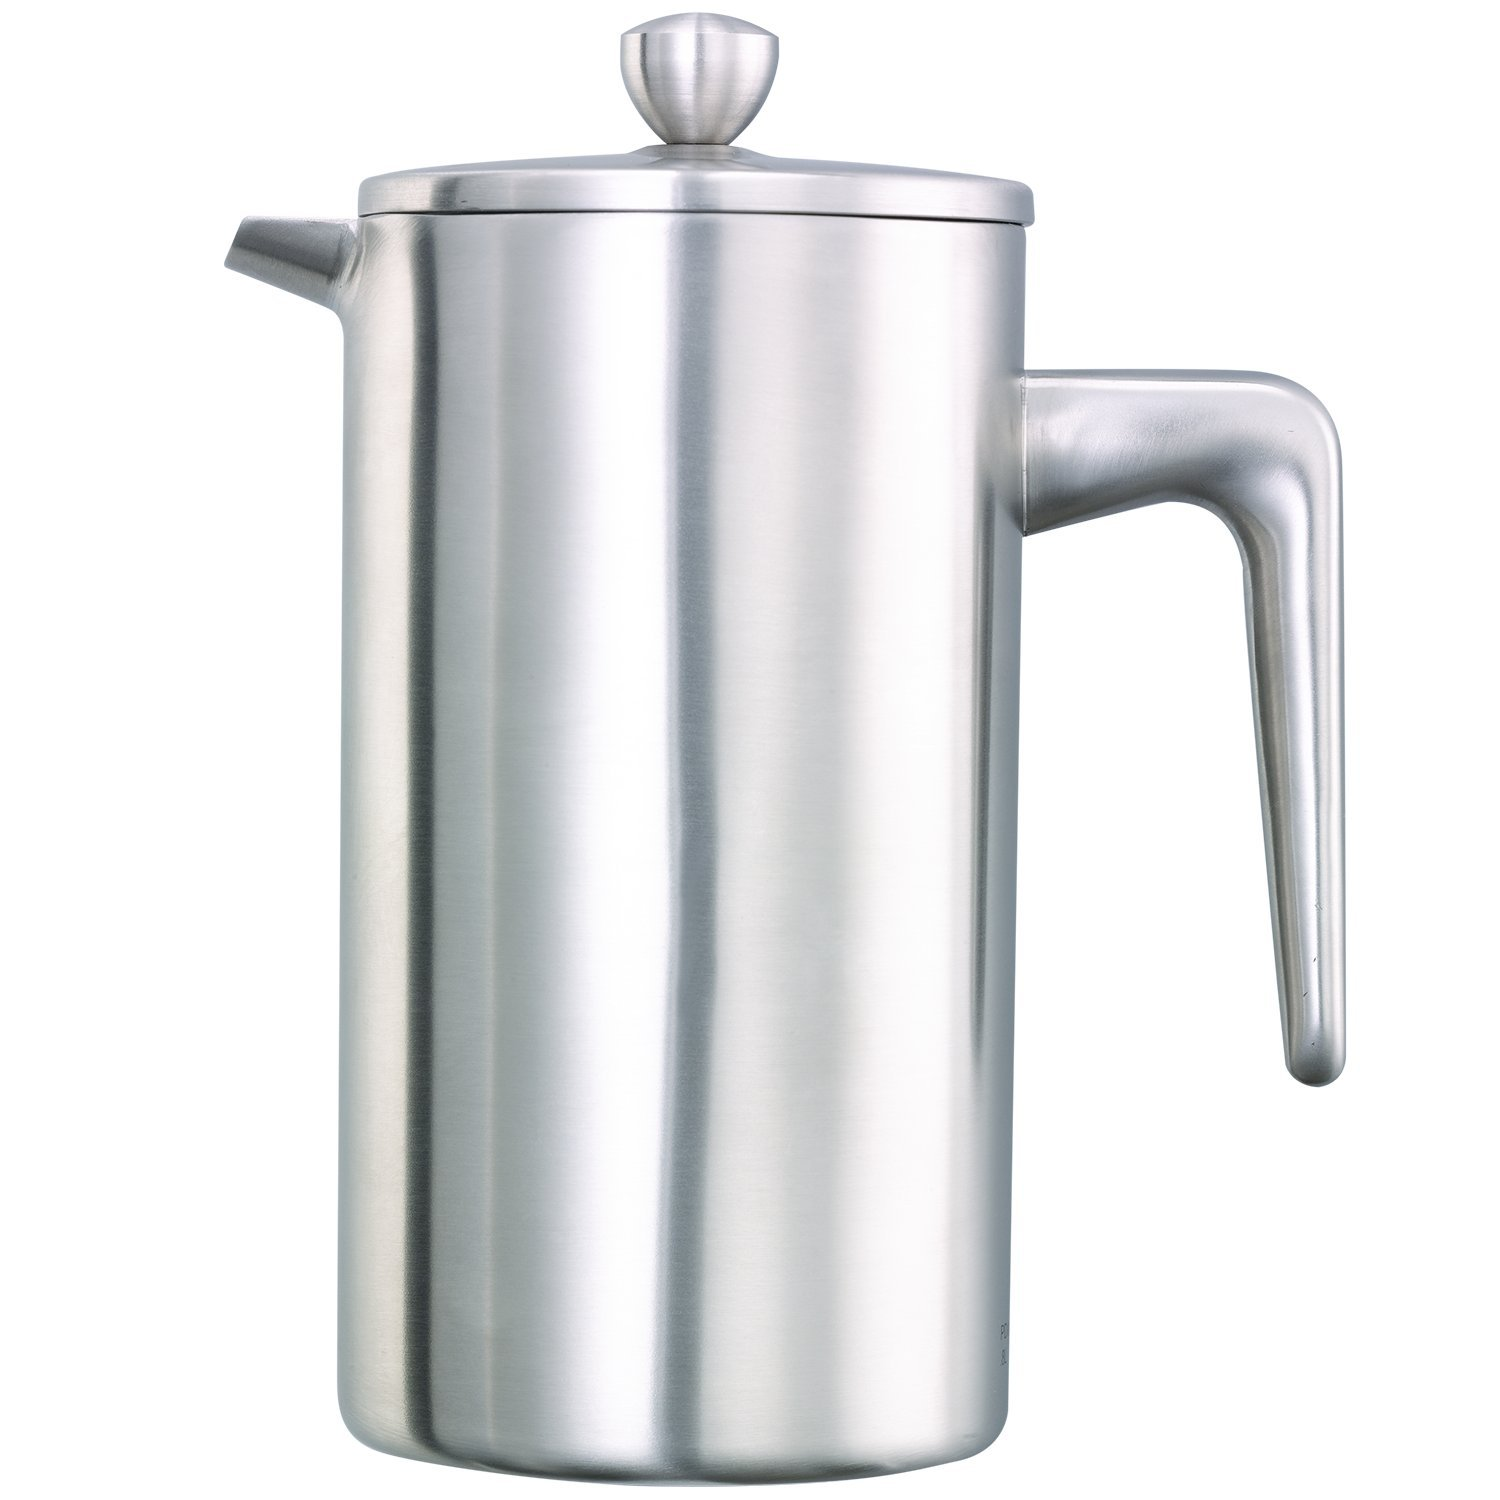 Service Ideas PDWSA800BS Double Wall Coffee Press, Stainless Steel, Brushed, 27 oz.